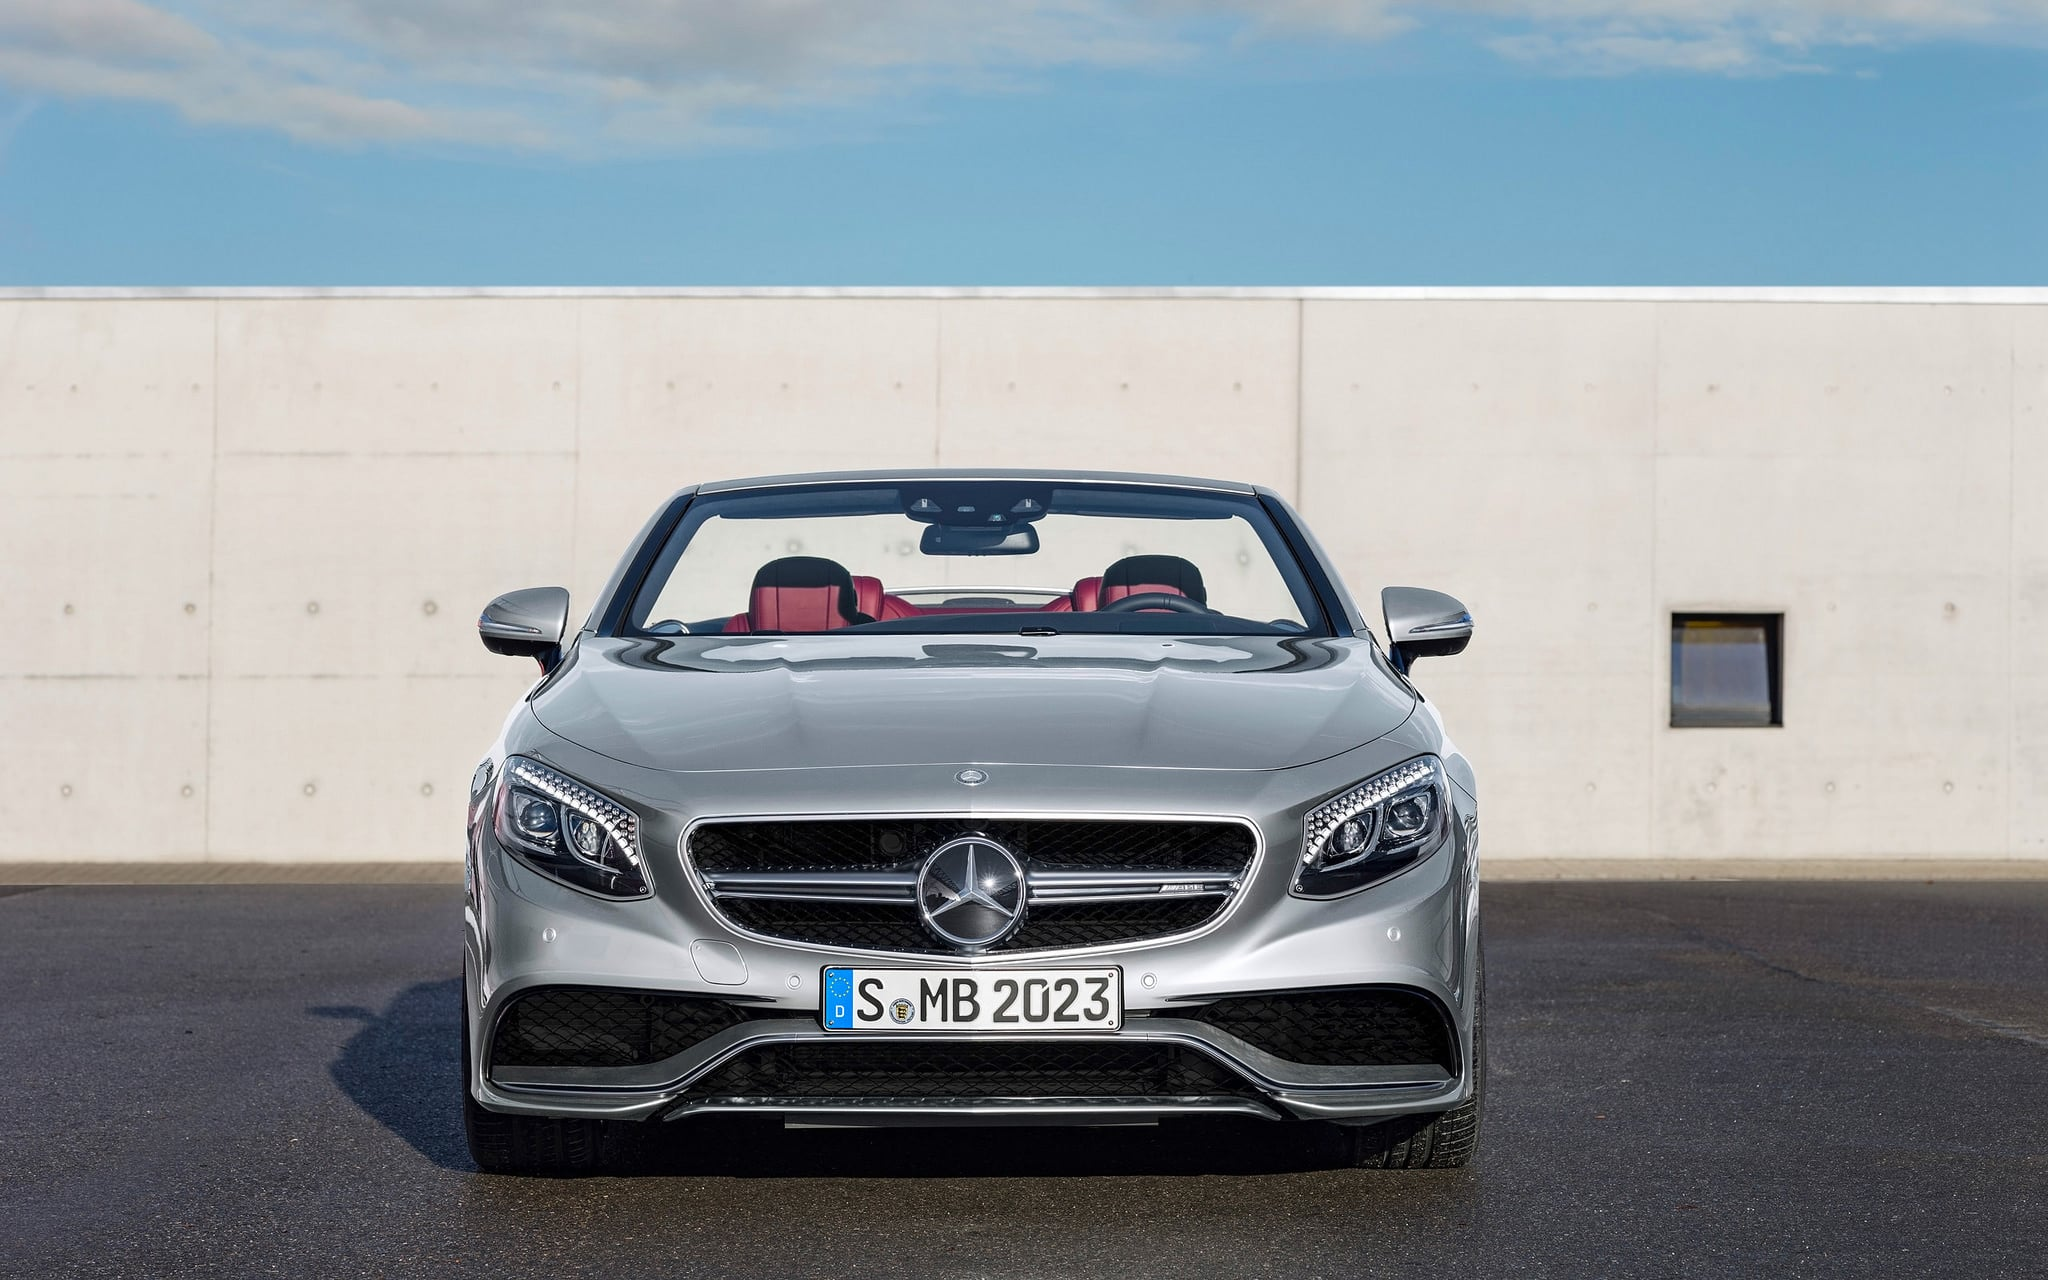 2016 Mercedes AMG S63 cabriolet wallpapers HD